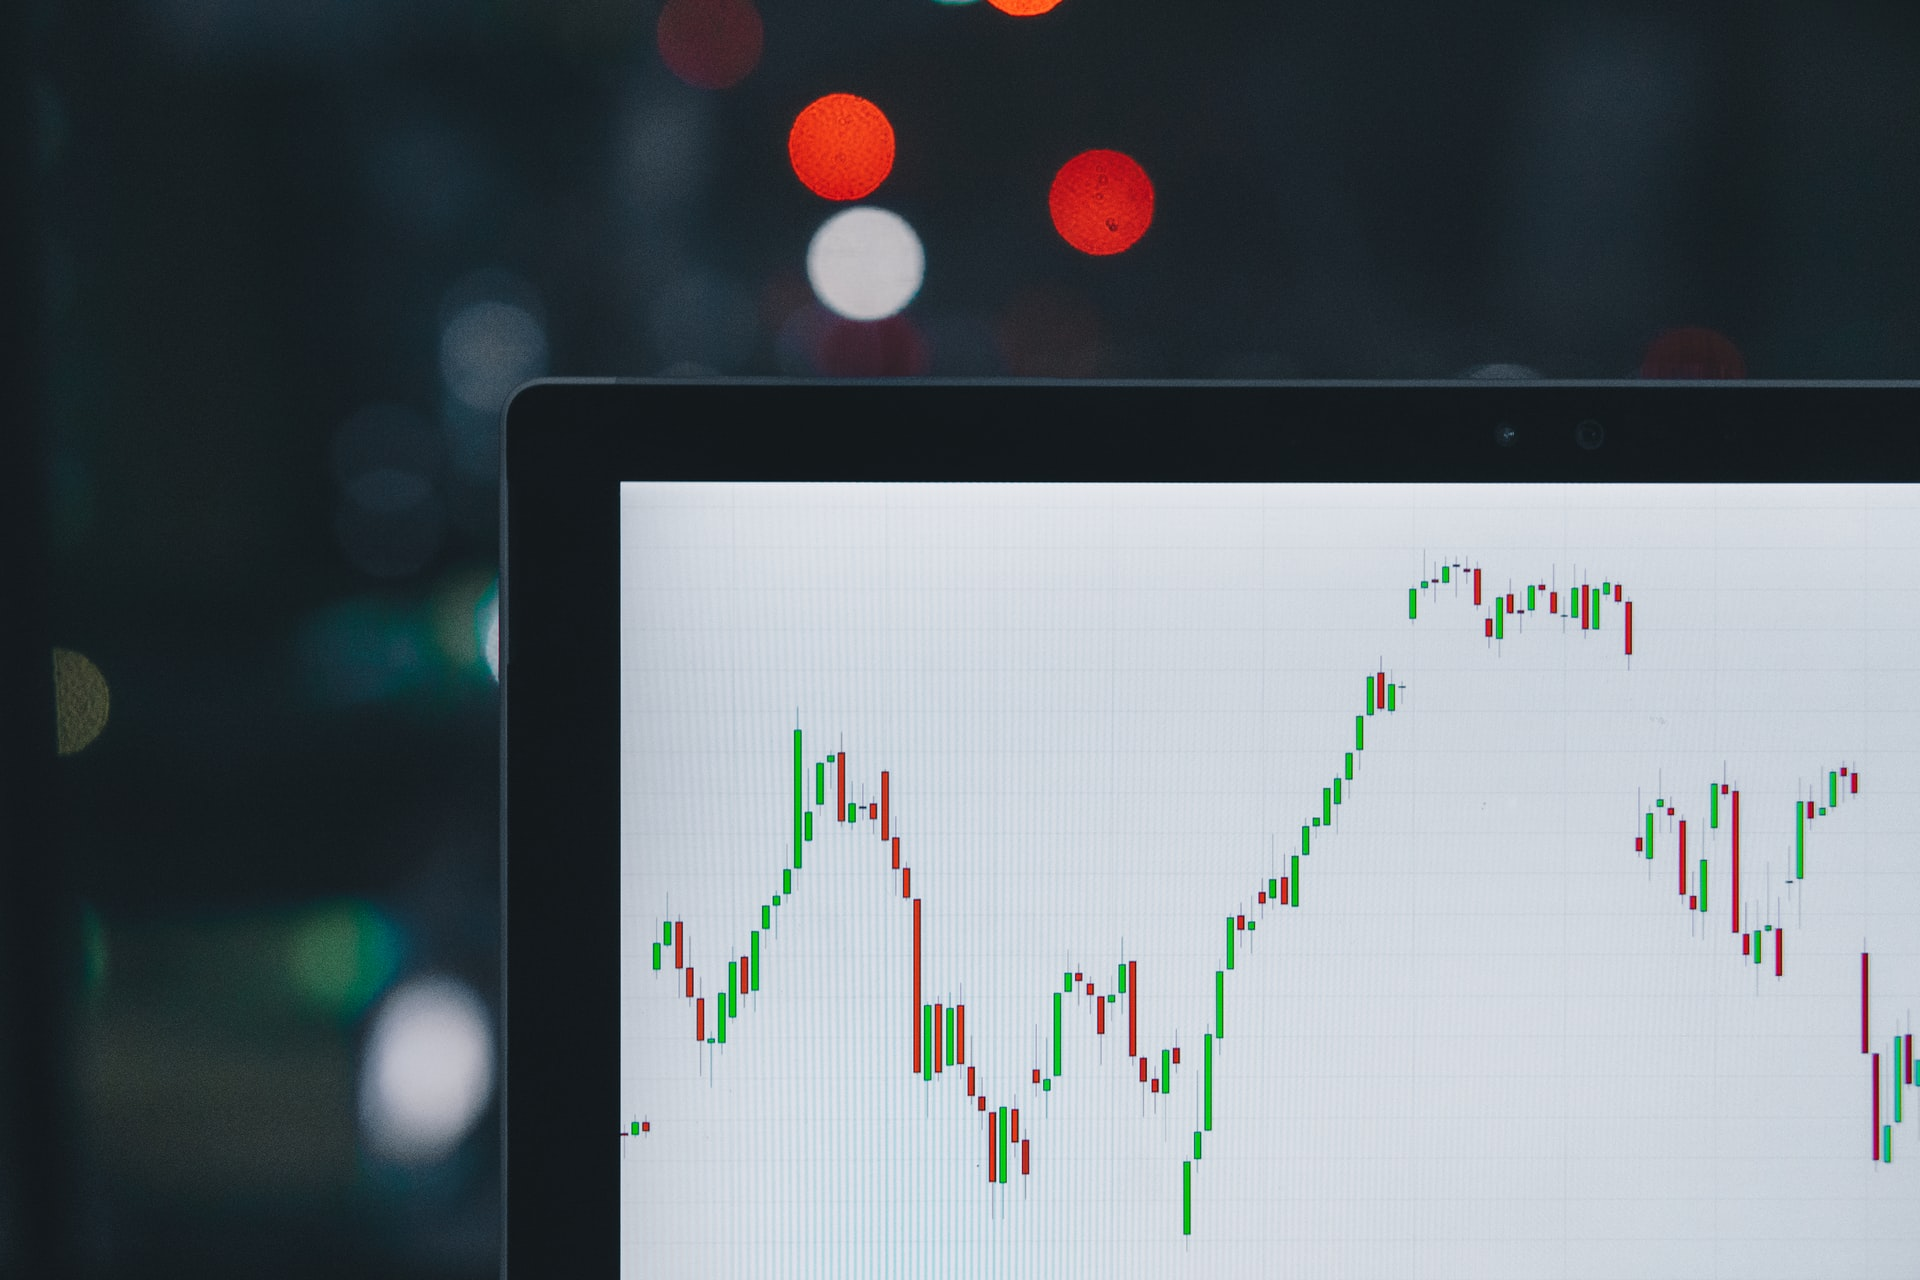 Chainlink, Sushiswap, Filecoin Price Analysis: 21 August